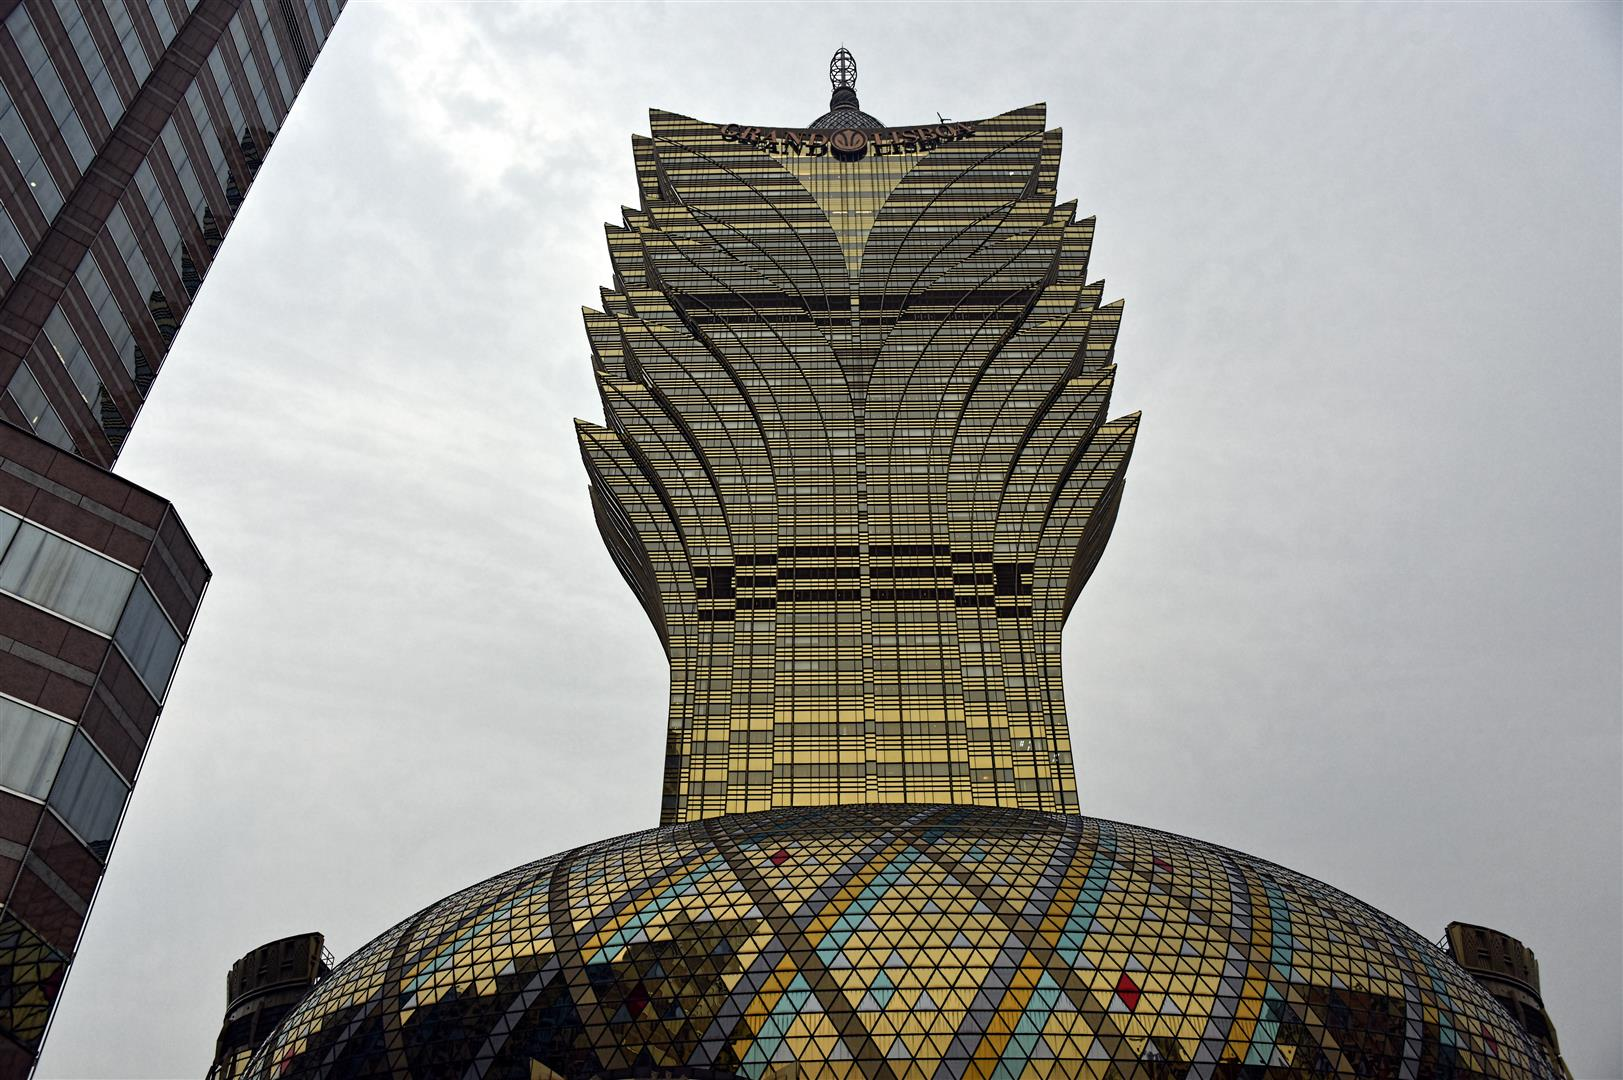 Macau - Grand Lisboa Hotel and Casino (Large)